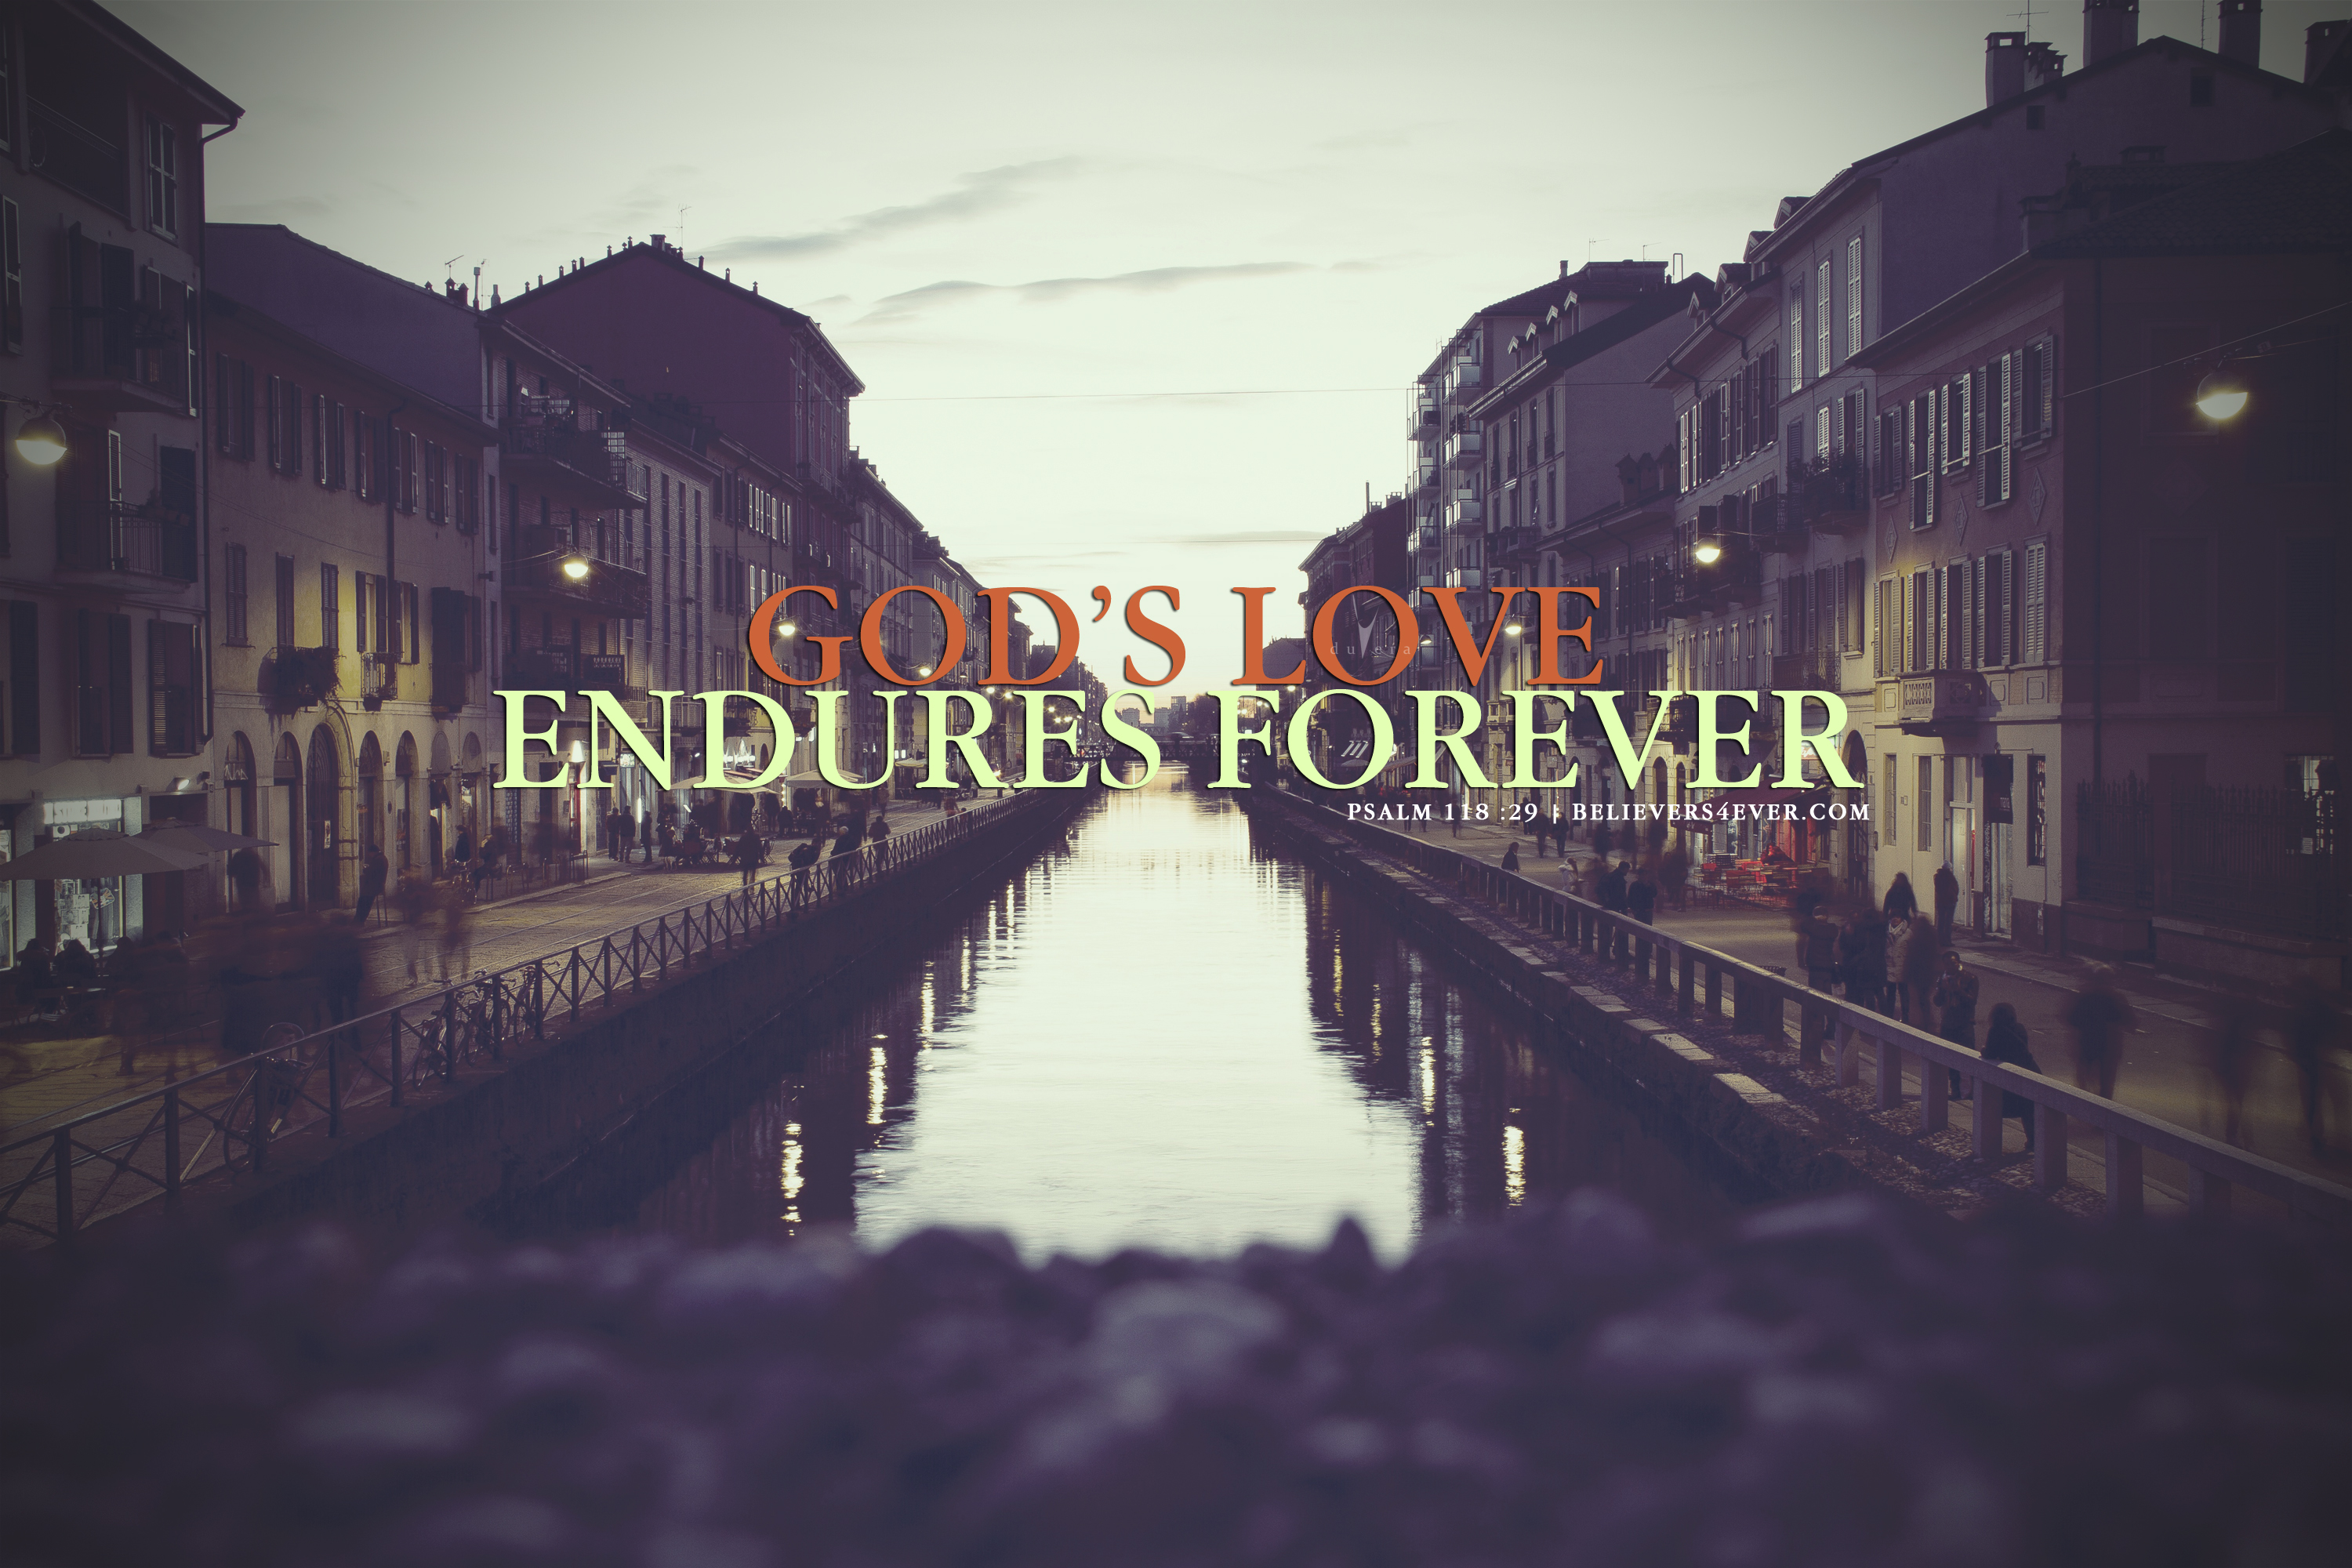 God's love endures forever